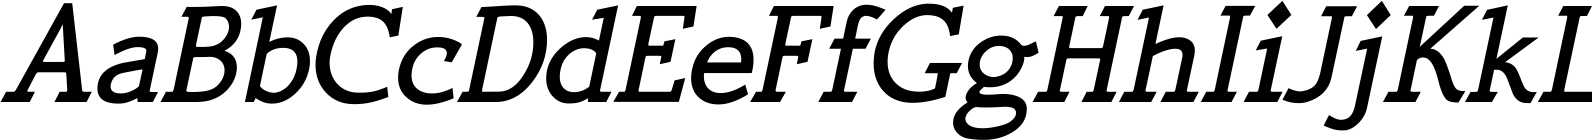 Quick Type Medium Italic Font